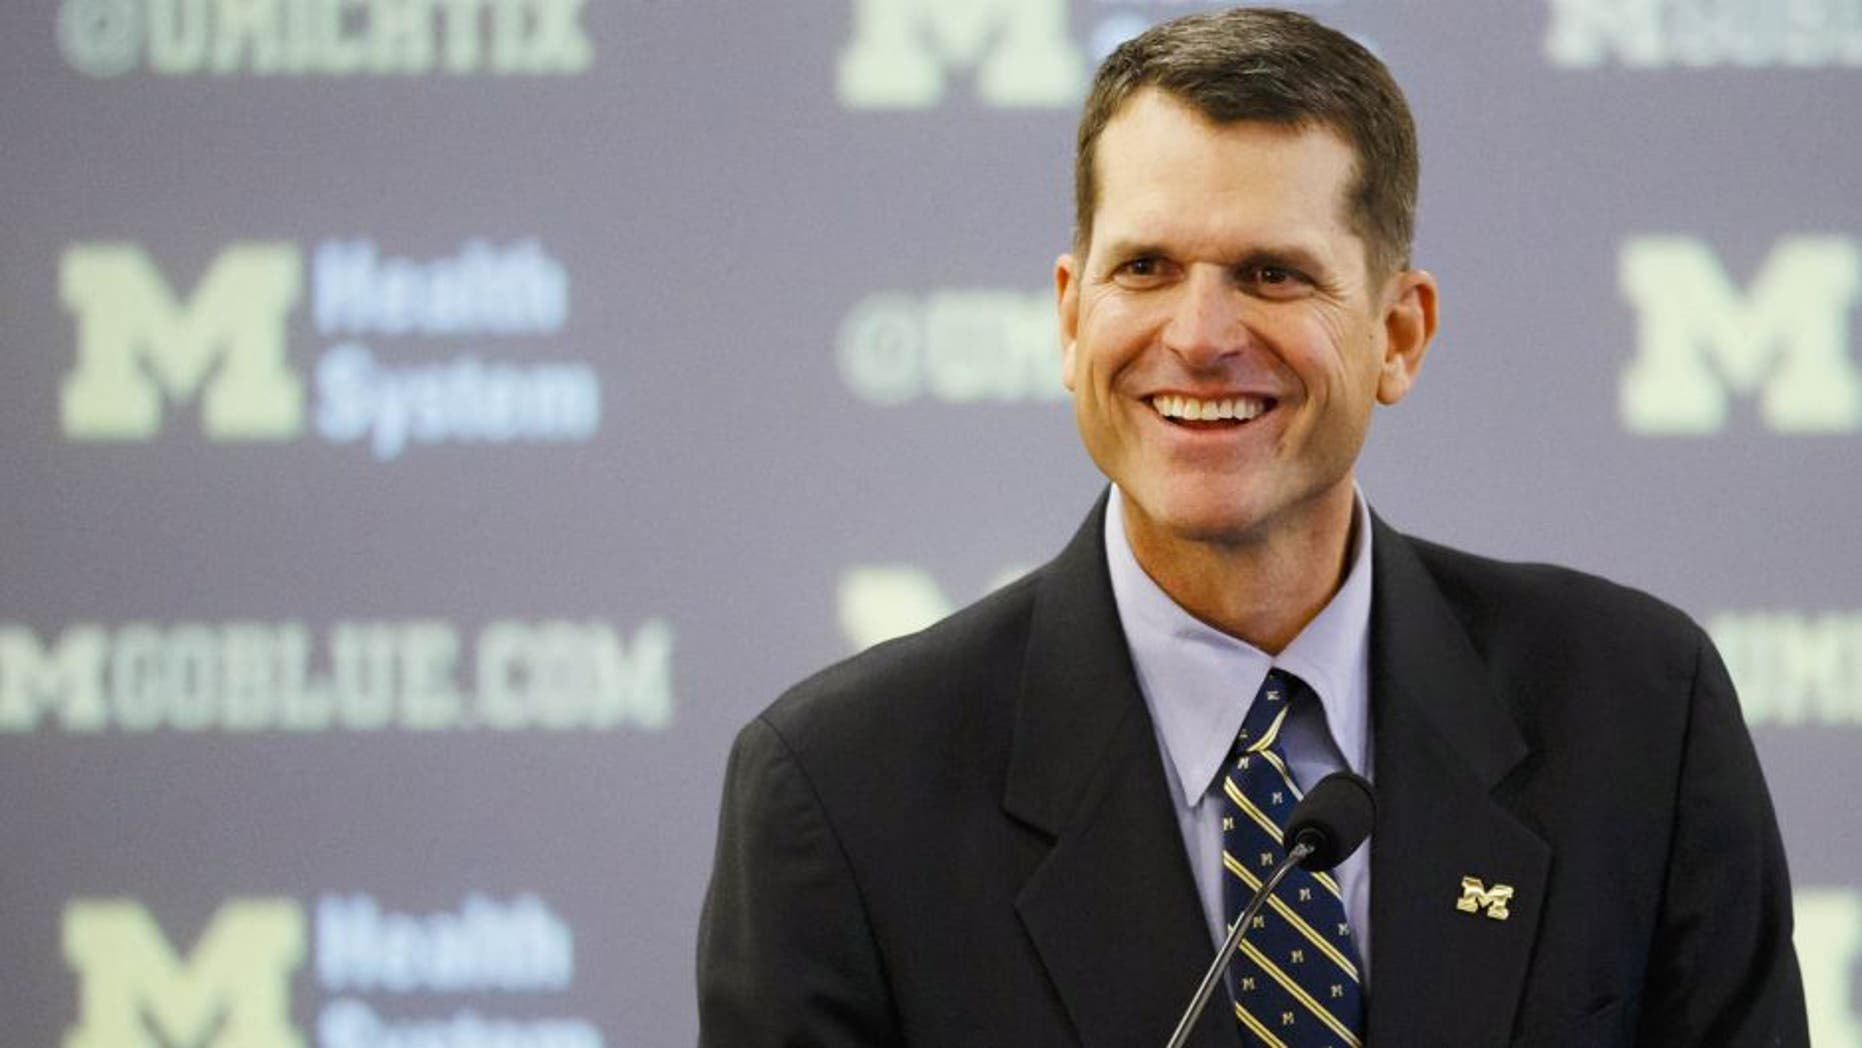 Dec 30, 2014; Ann Arbor, MI, USA; Jim Harbaugh speaks to the media as he is introduced as the new head football coach of the Michigan Wolverines at Jonge Center. Mandatory Credit: Rick Osentoski-USA TODAY Sports